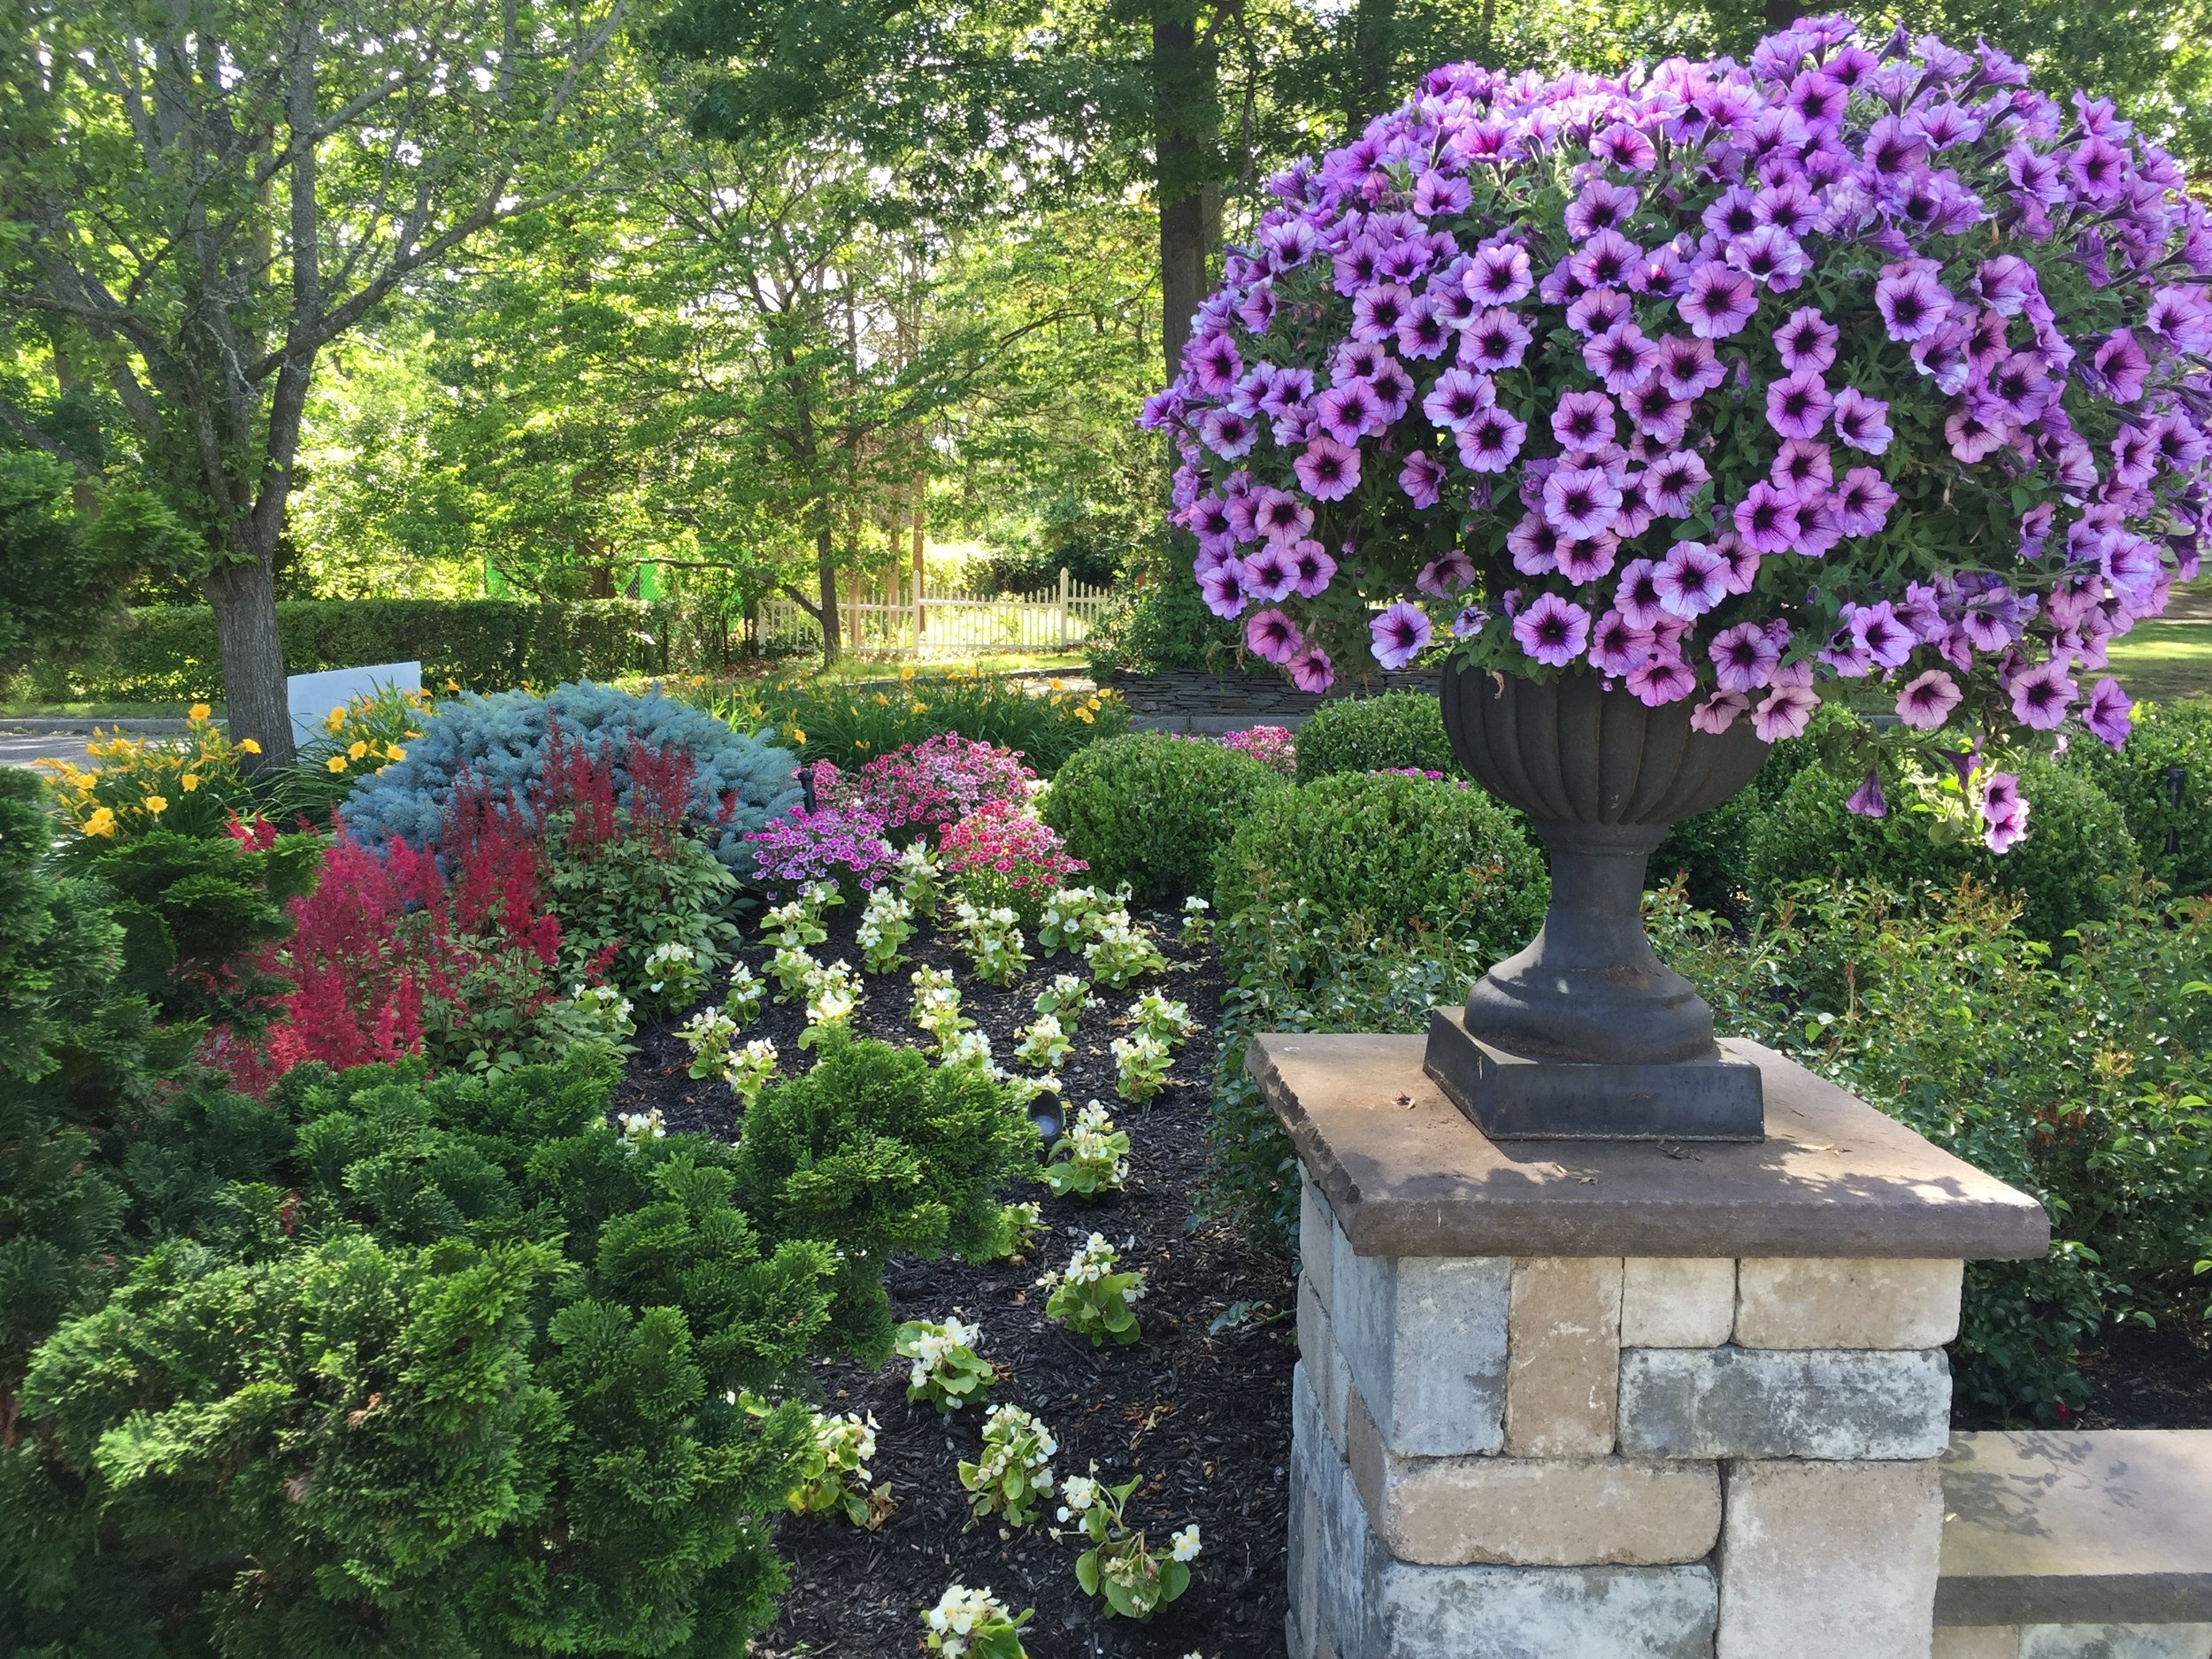 Professional planting landscapedesign company in Long Island, NY